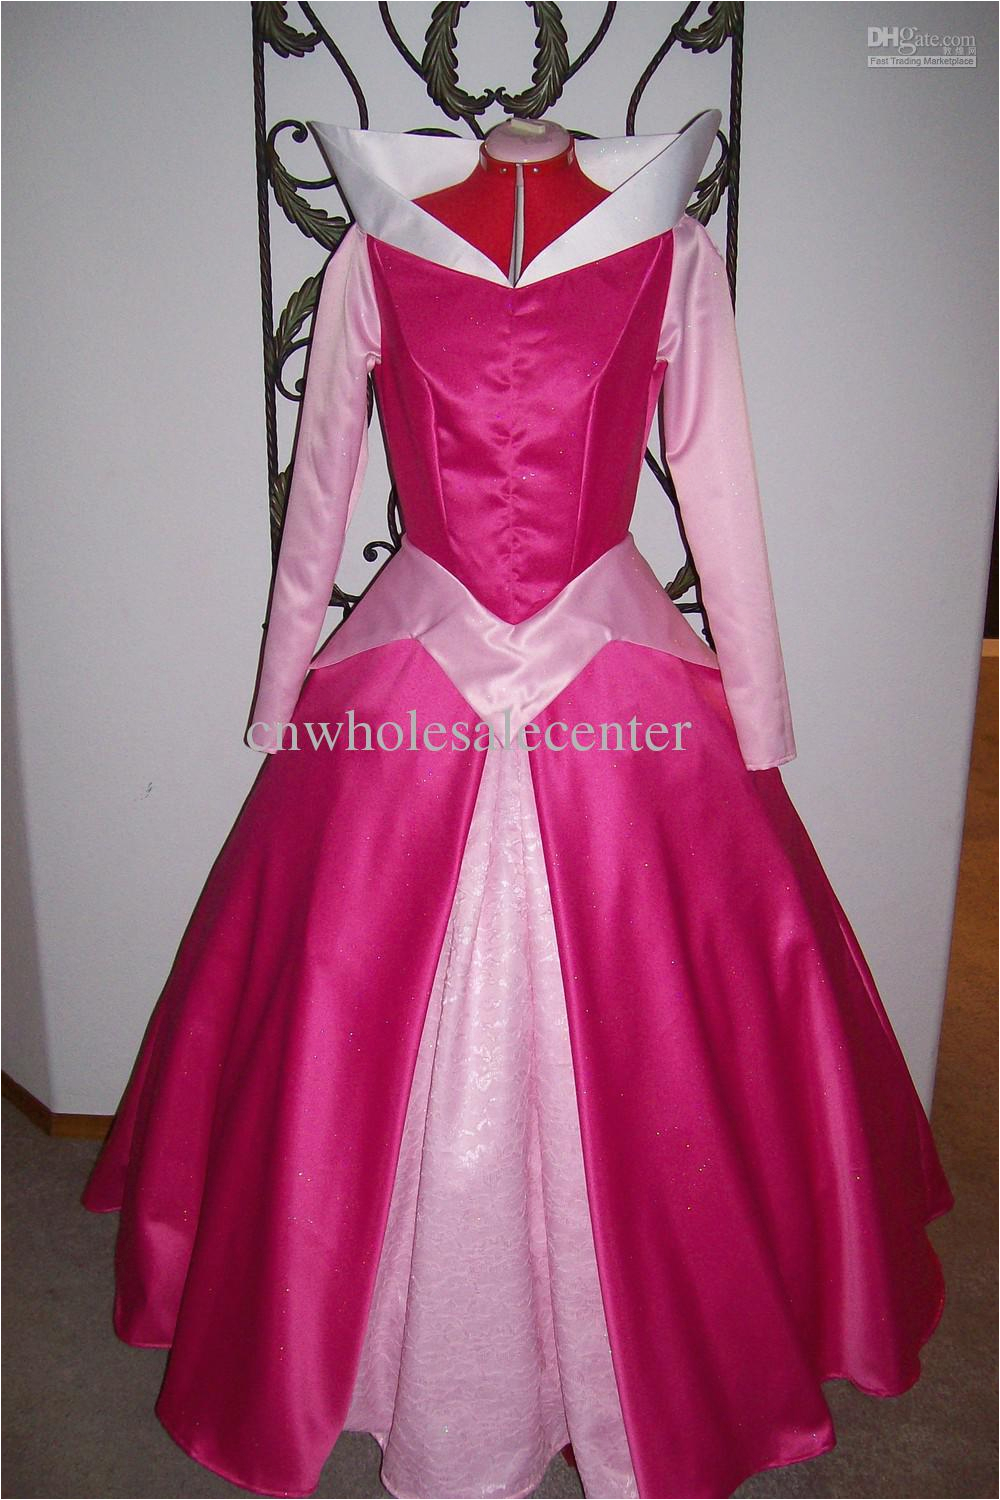 custom made the sleeping beauty dress adult size party